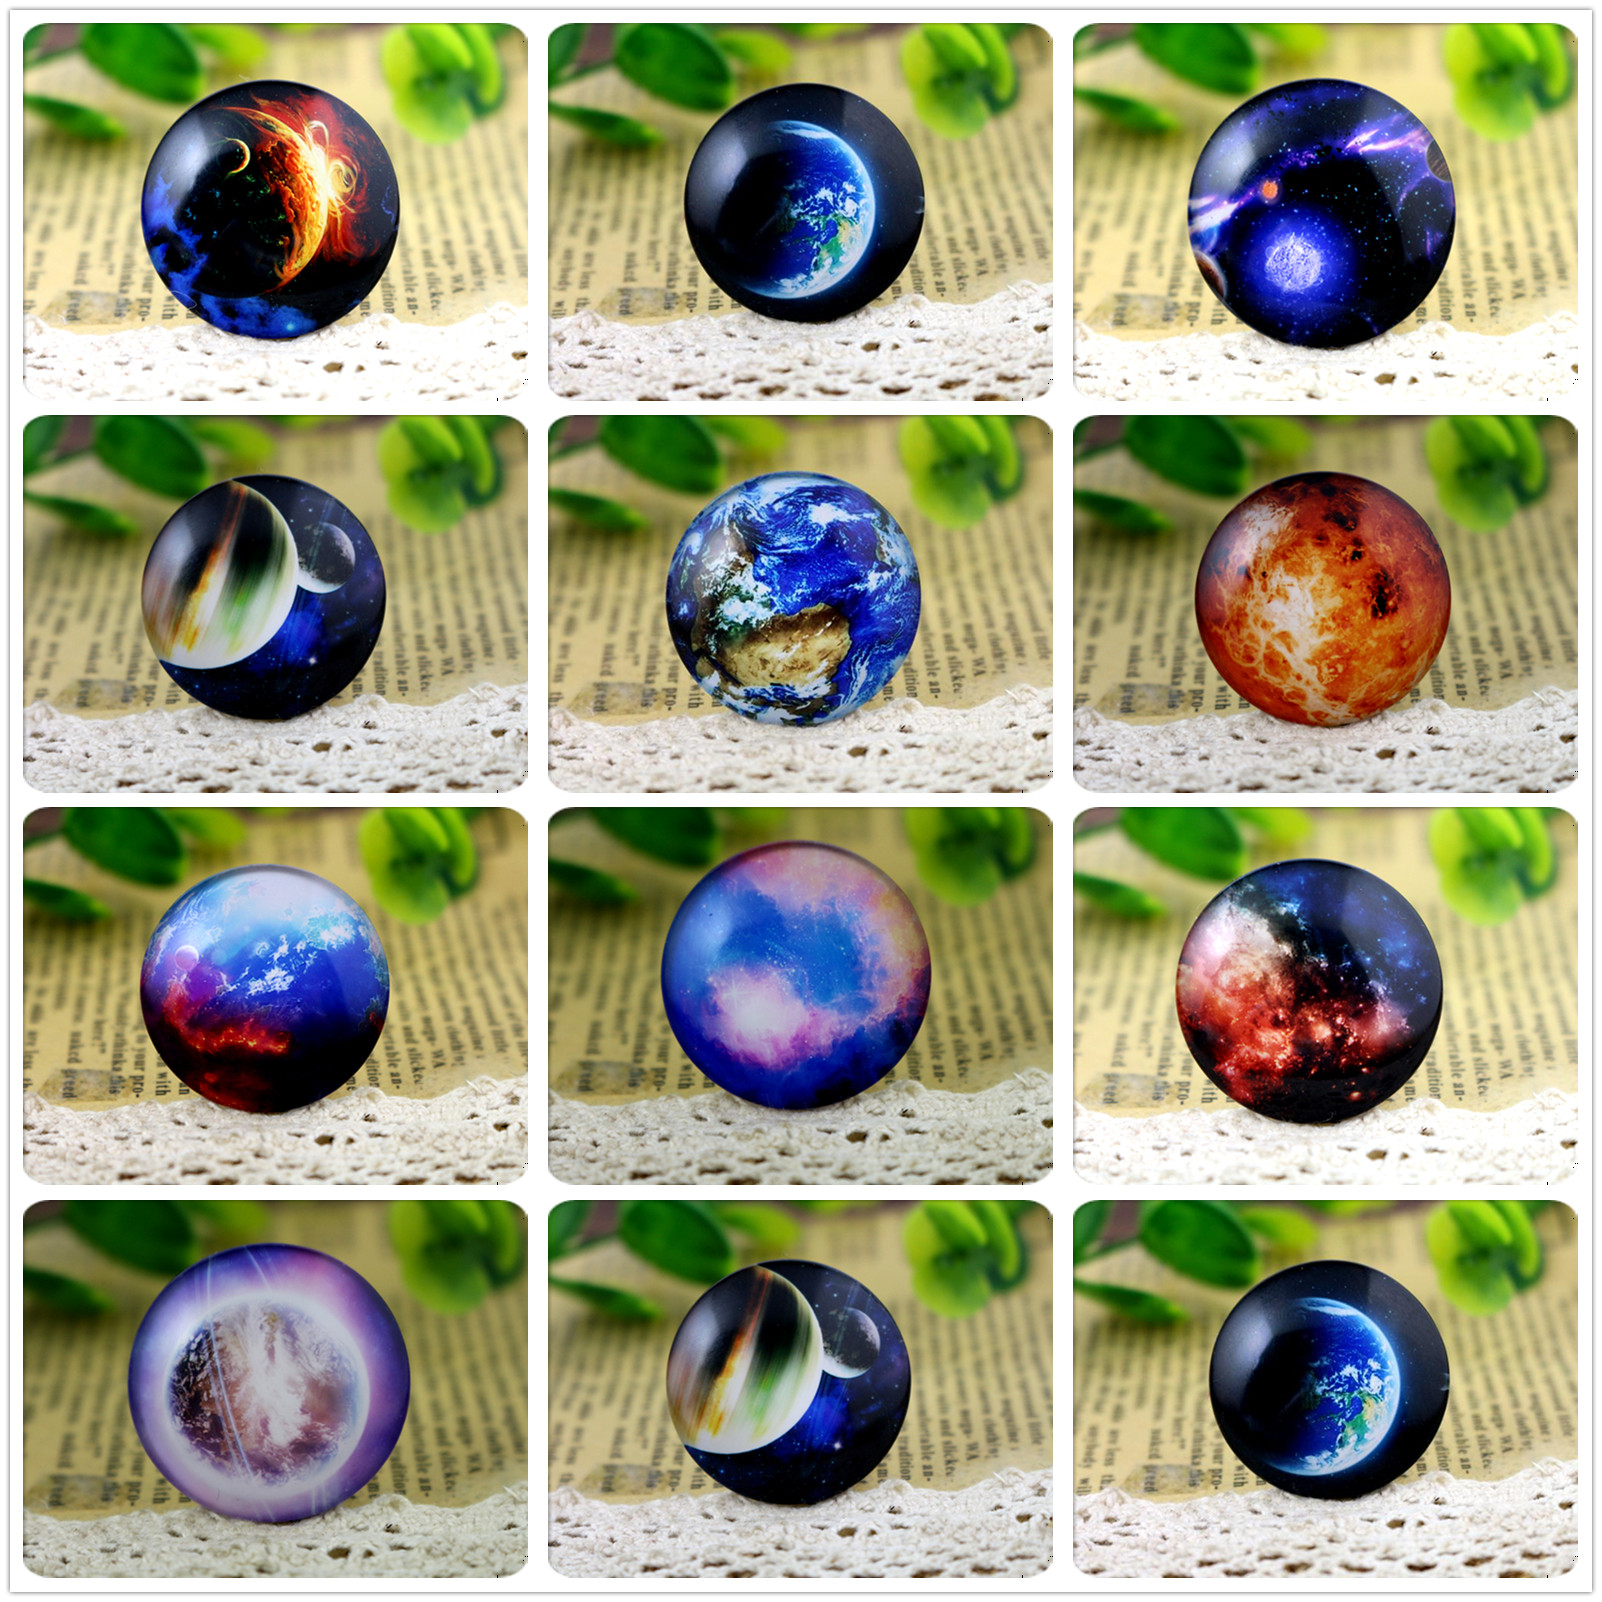 Hot Sale 3pcs 30mm Handmade Photo Glass Cabochons (Moon Nebula series)Hot Sale 3pcs 30mm Handmade Photo Glass Cabochons (Moon Nebula series)